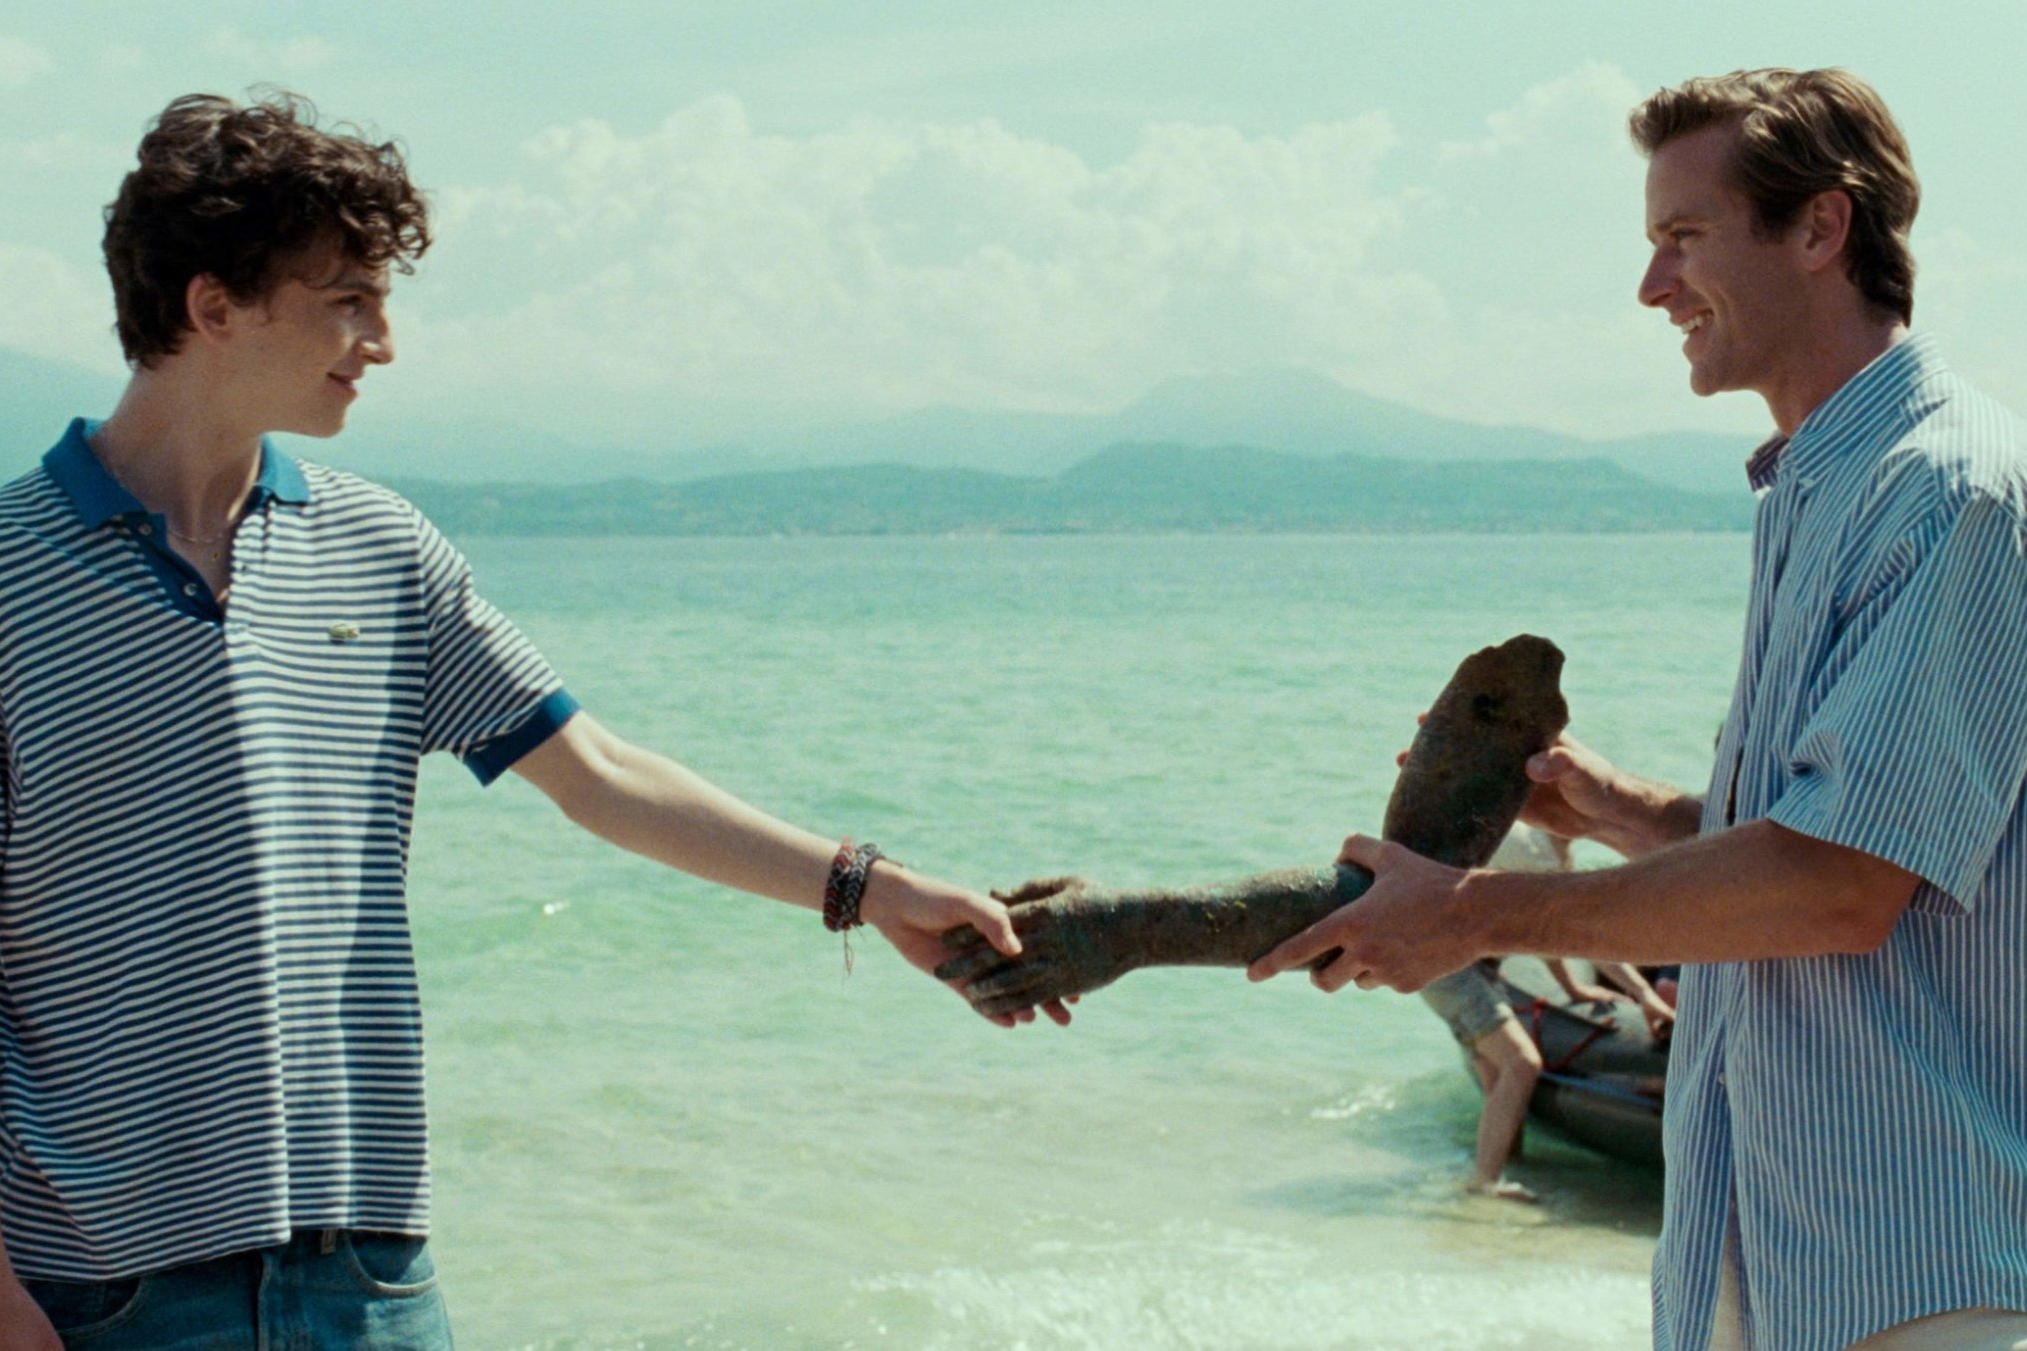 Call Me by Your Name (2017) - Directed by: Luca GuadagninoWritten by: James Ivory & André Aciman (novel).